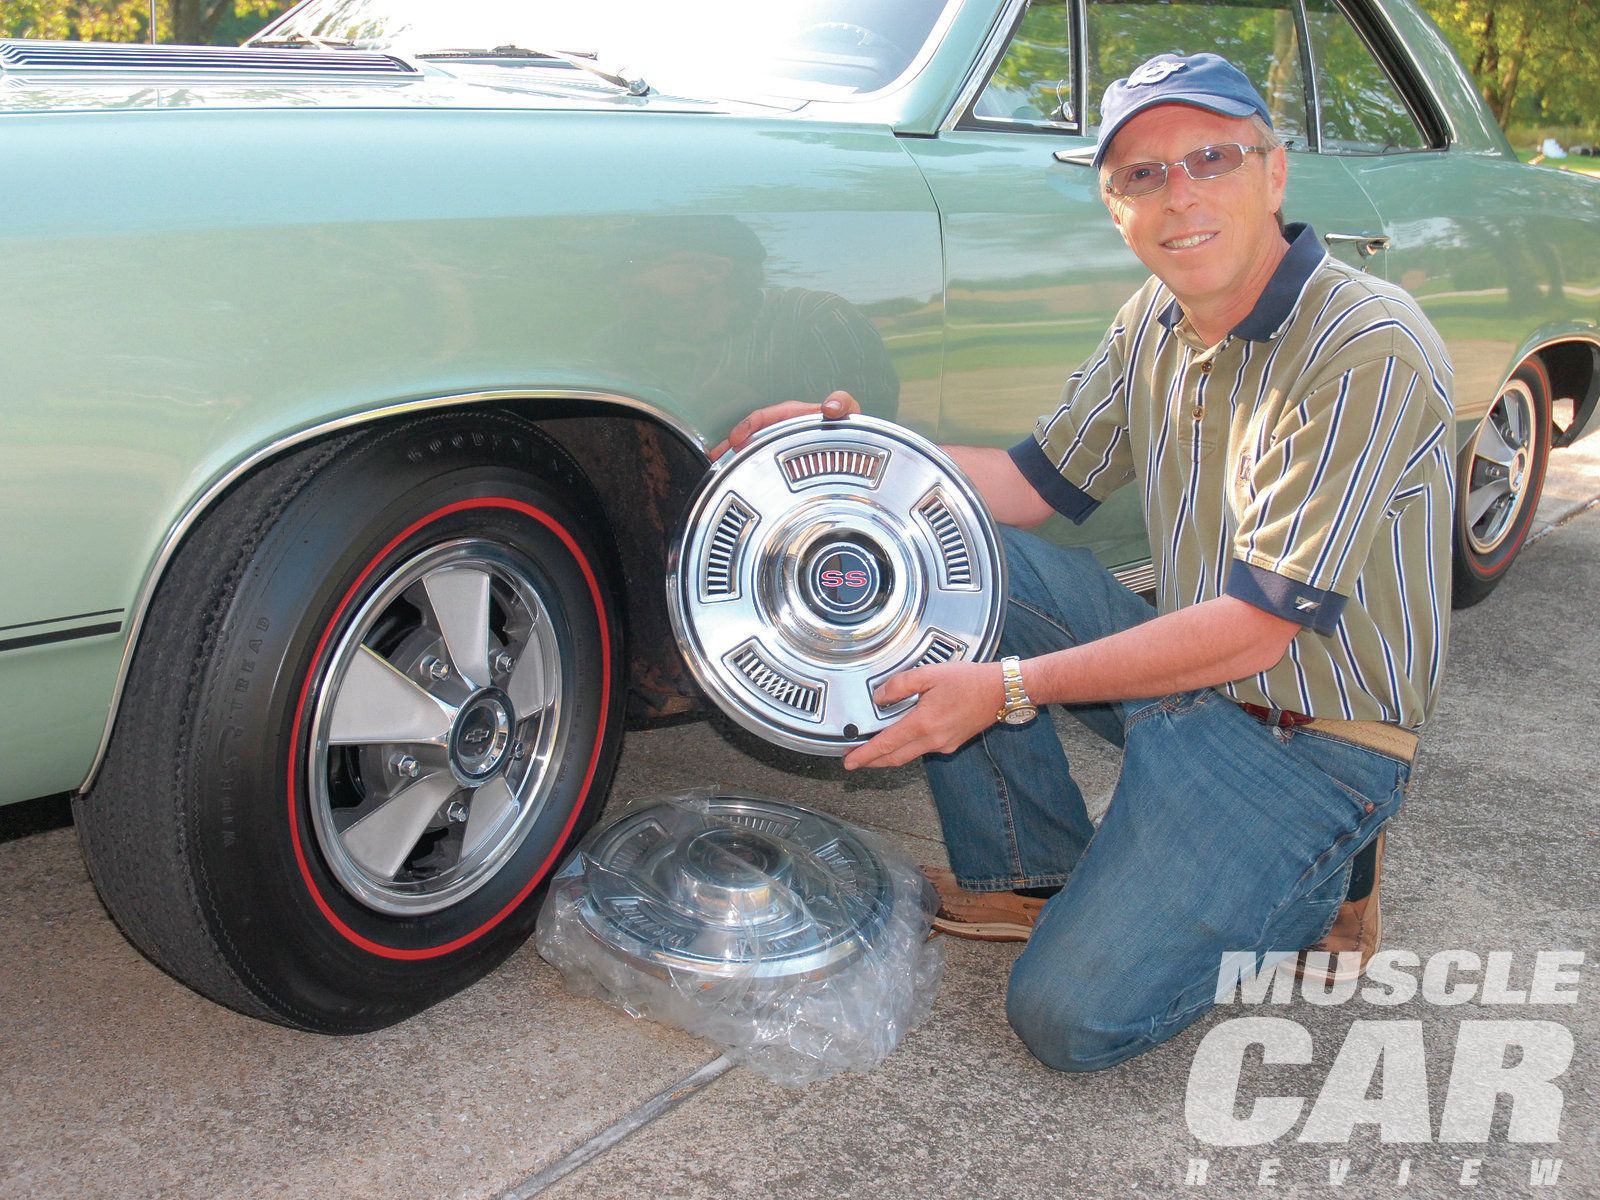 George, the Chevelle's third owner, replaced the original F70-14-inch Firestone bias-ply whitewall tires with a set of Coker Firestone reproduction F70-14-inch red-stripe tires. He further spiffed up the car's appearance with a set of '67 simulated magnesium wheel covers. But George still has the OE SS full wheel covers, which, like the OE tires, are stashed away for safekeeping.